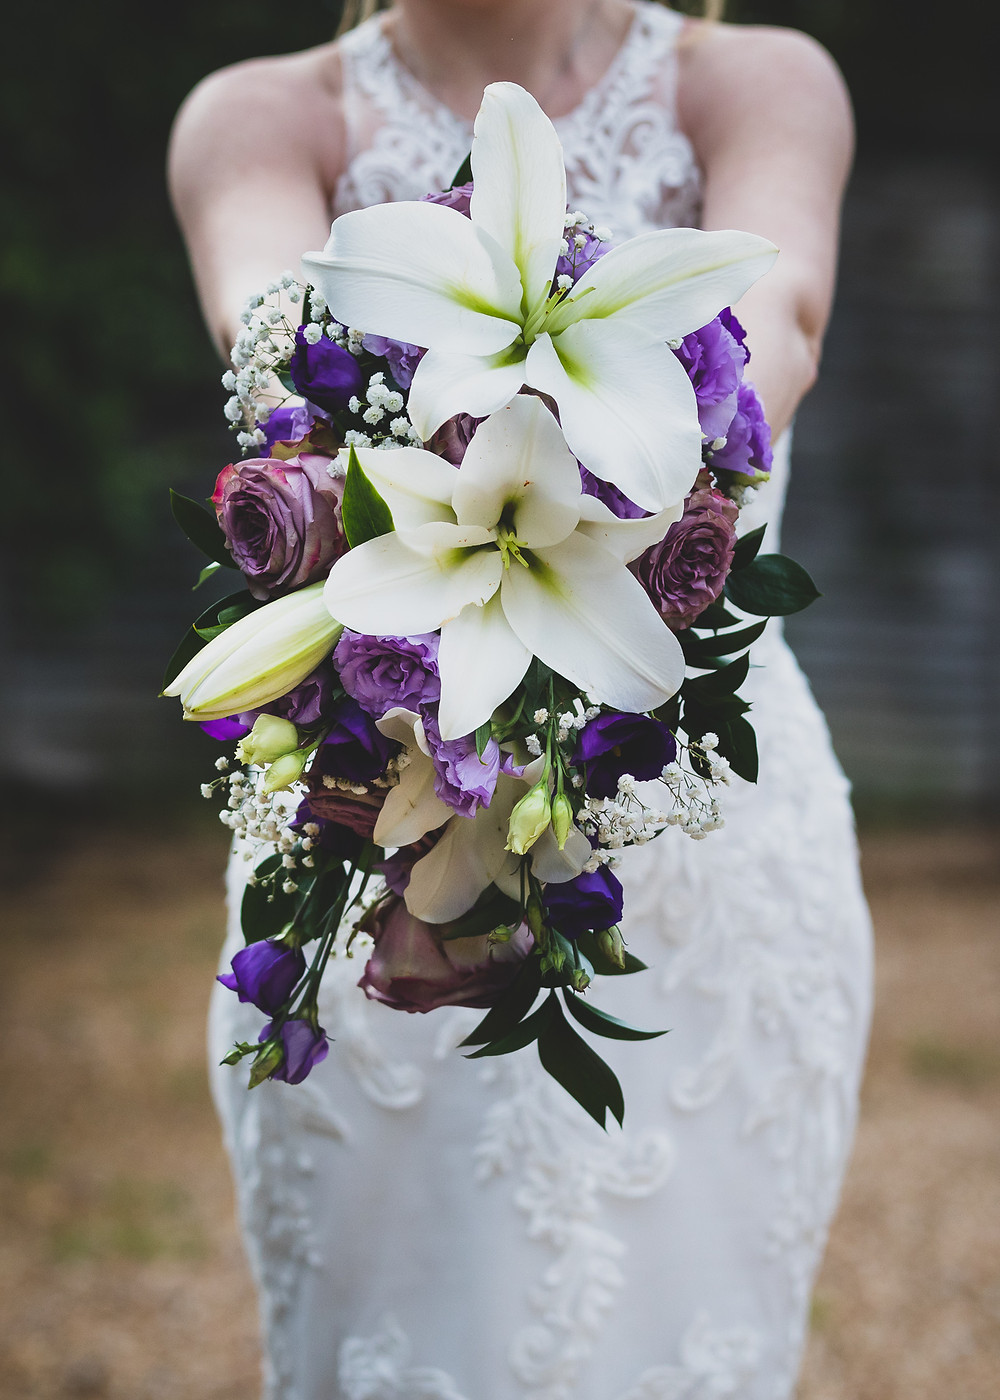 Purple and white wedding bouquet by Steve and Tania Photography